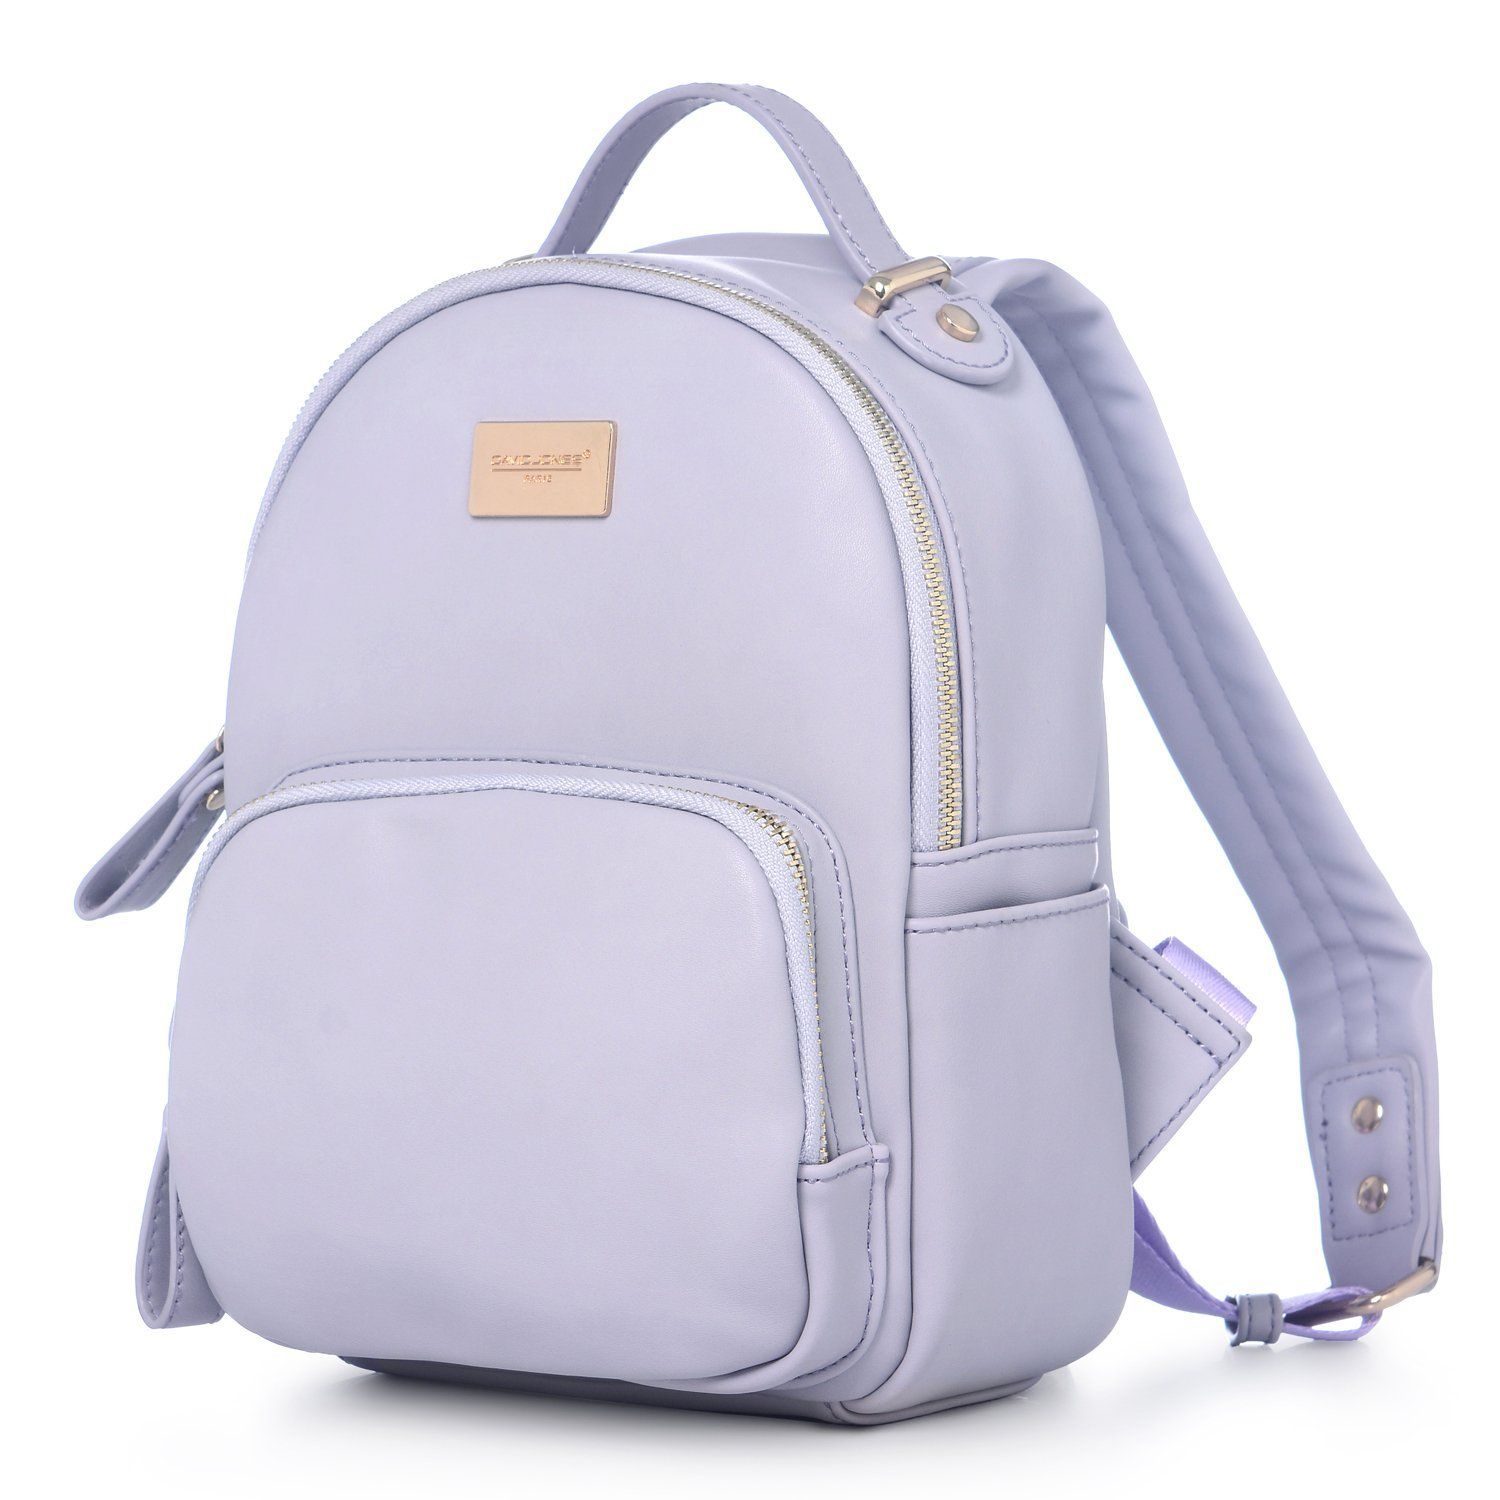 93fee5b146 Mini Backpack - Amazon